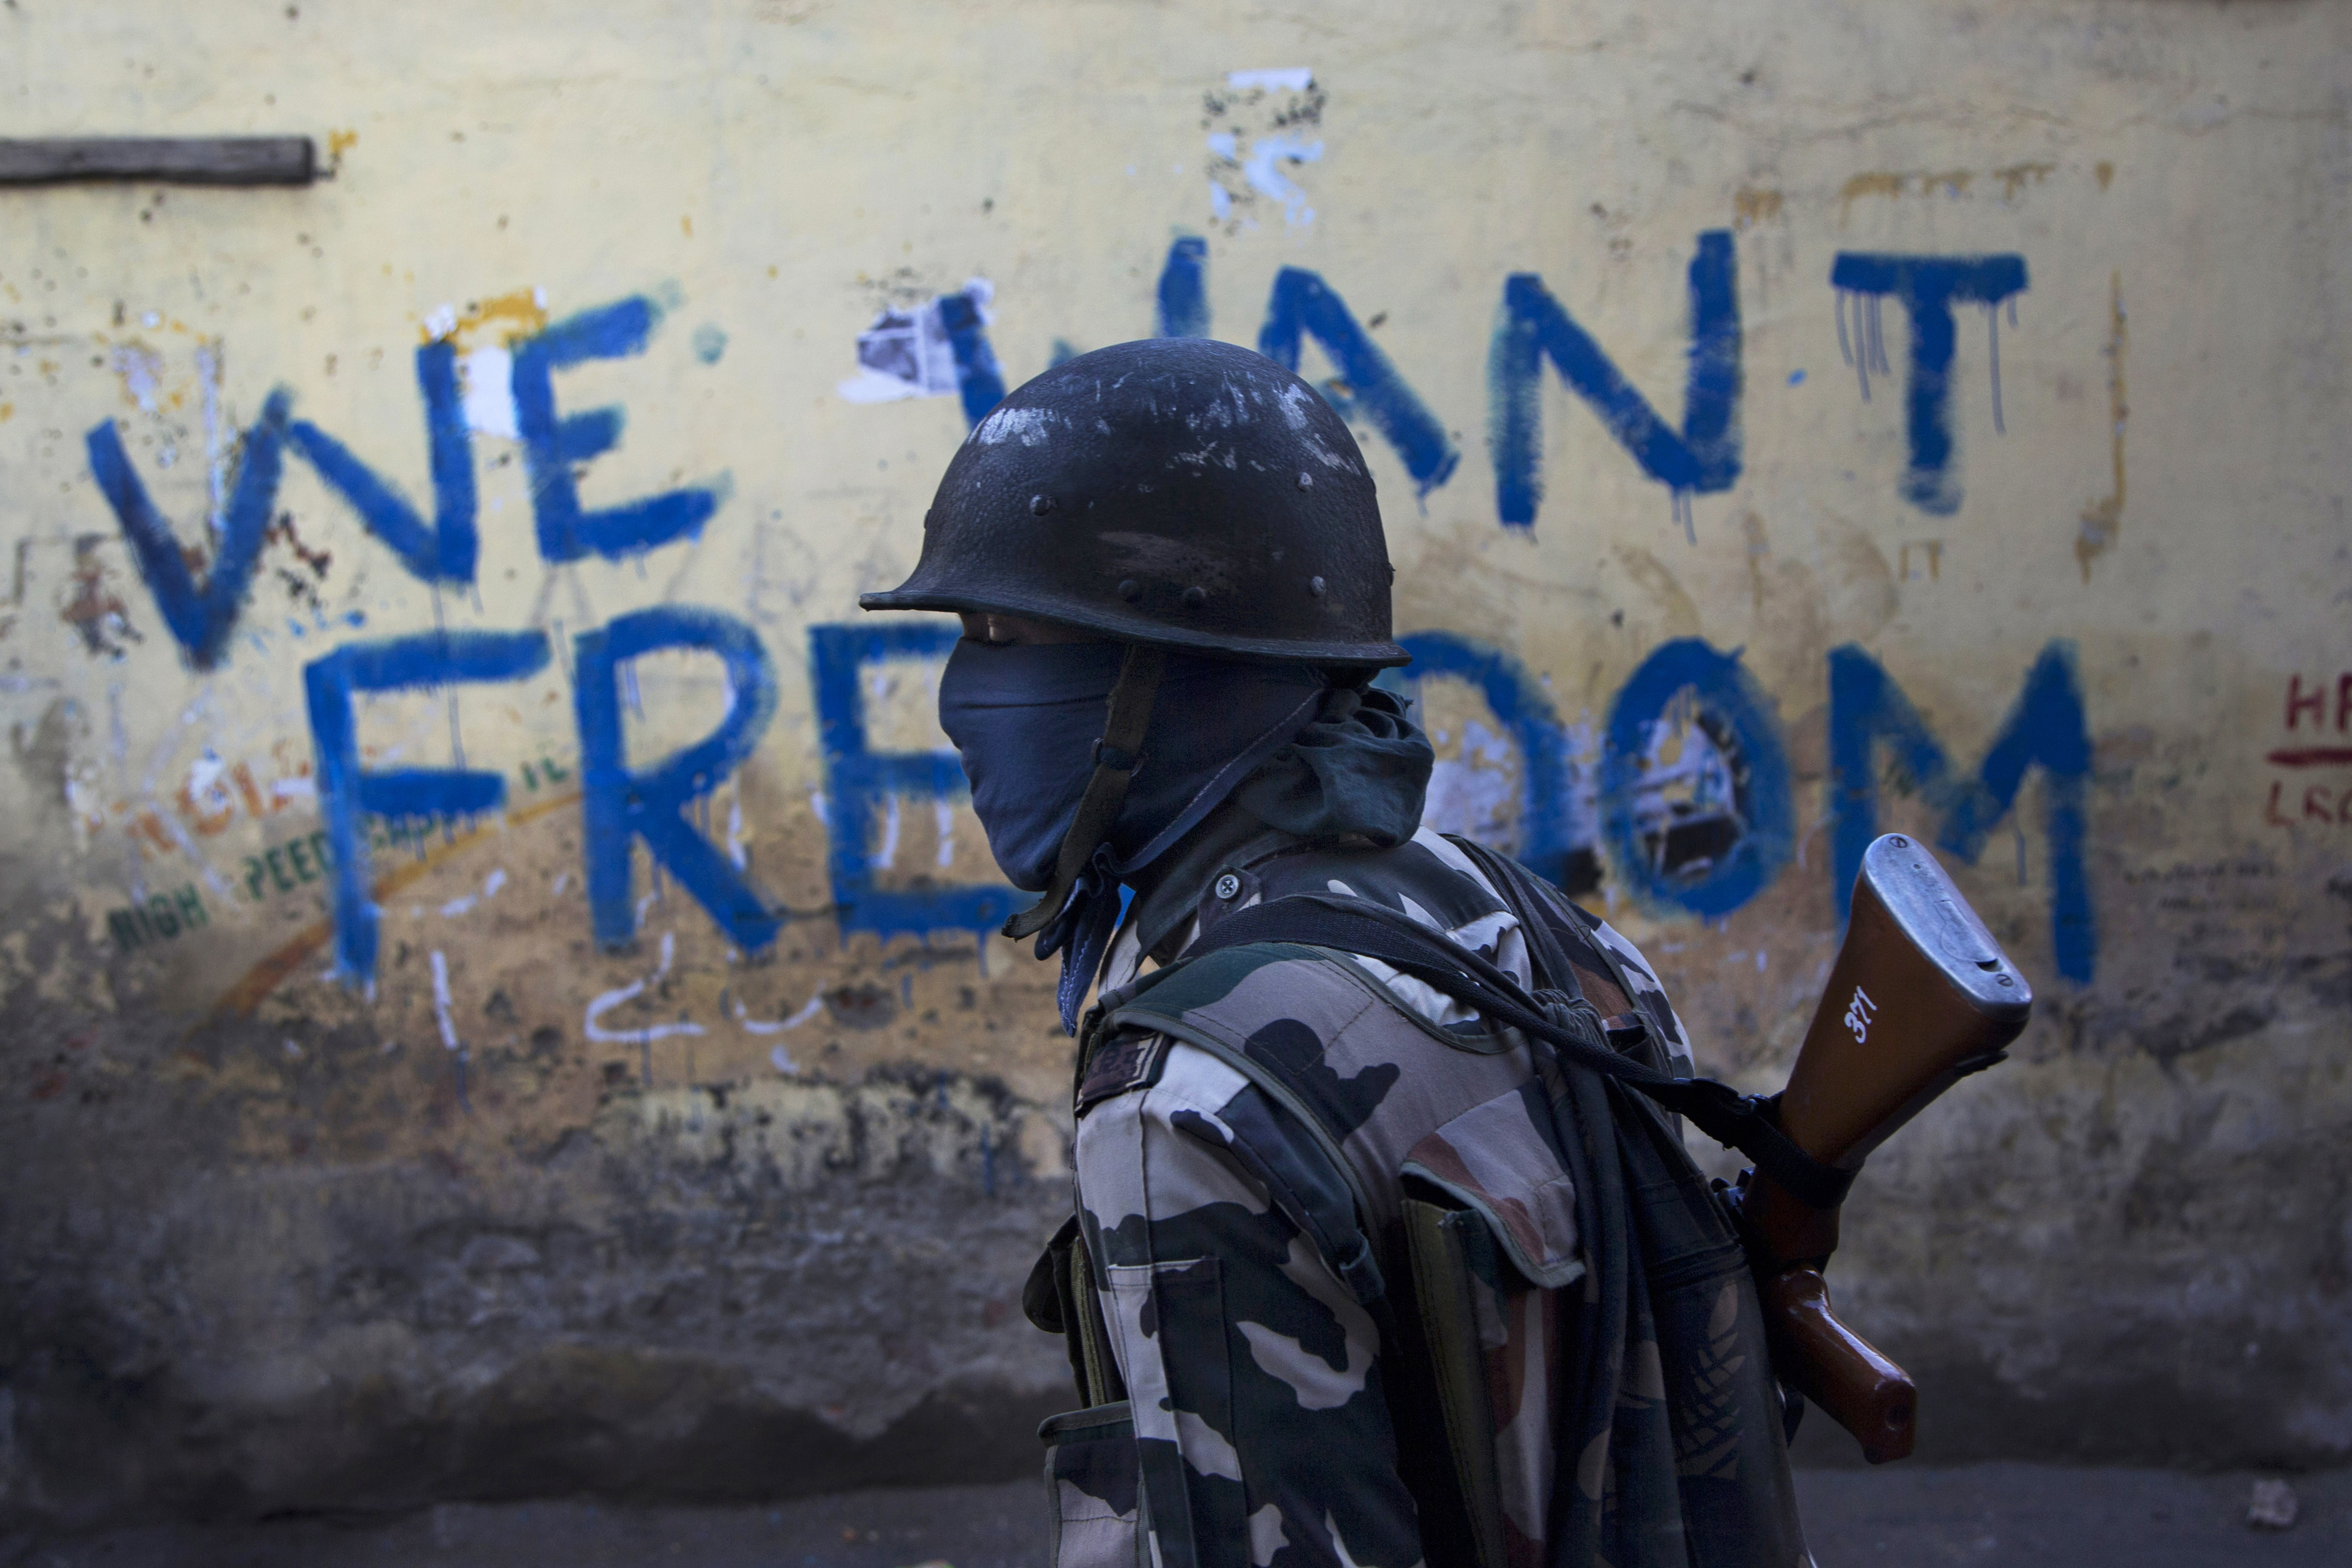 FILE- In this Aug. 29, 2016 file photo, an Indian paramilitary soldier walks past graffiti on a wall in Srinagar, Indian-controlled Kashmir. As India considers its response to the suicide car bombing of a paramilitary convoy in Kashmir that killed dozens of soldiers on Feb. 14, 2019, a retired military commander who oversaw a much-lauded military strike against neighboring Pakistan in 2016 has urged caution. India blamed the attack on Pakistan and promised a